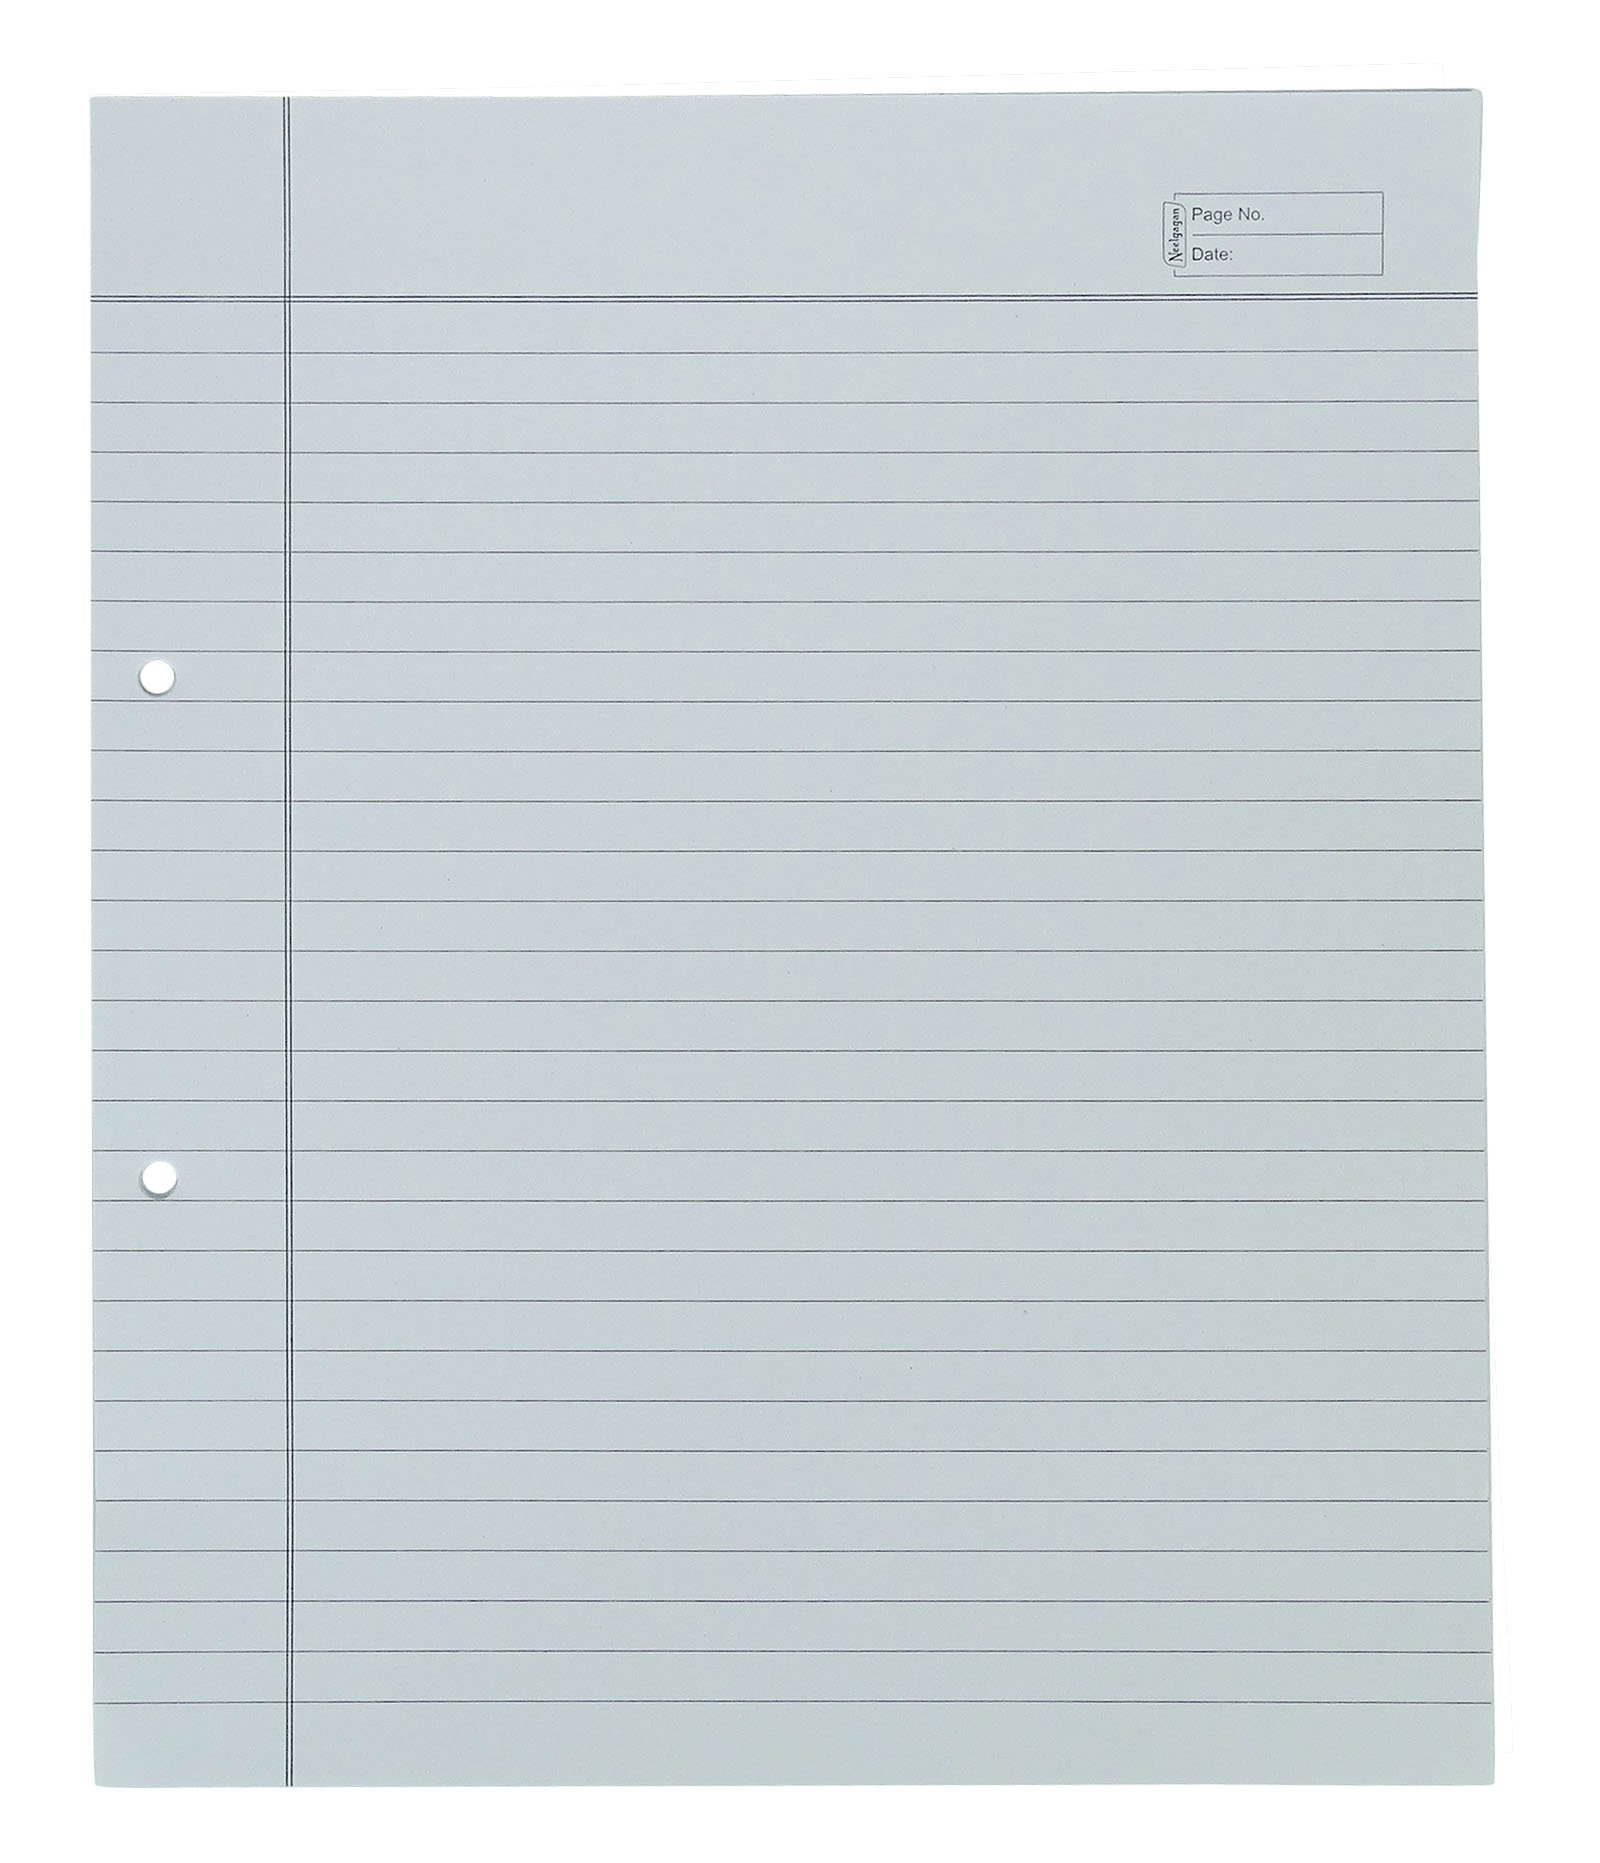 Neelgagan Plain & Ruled Line Loose Leaf A4 Size Paper With Margin School Stationary 24 Sheets - Packs Available